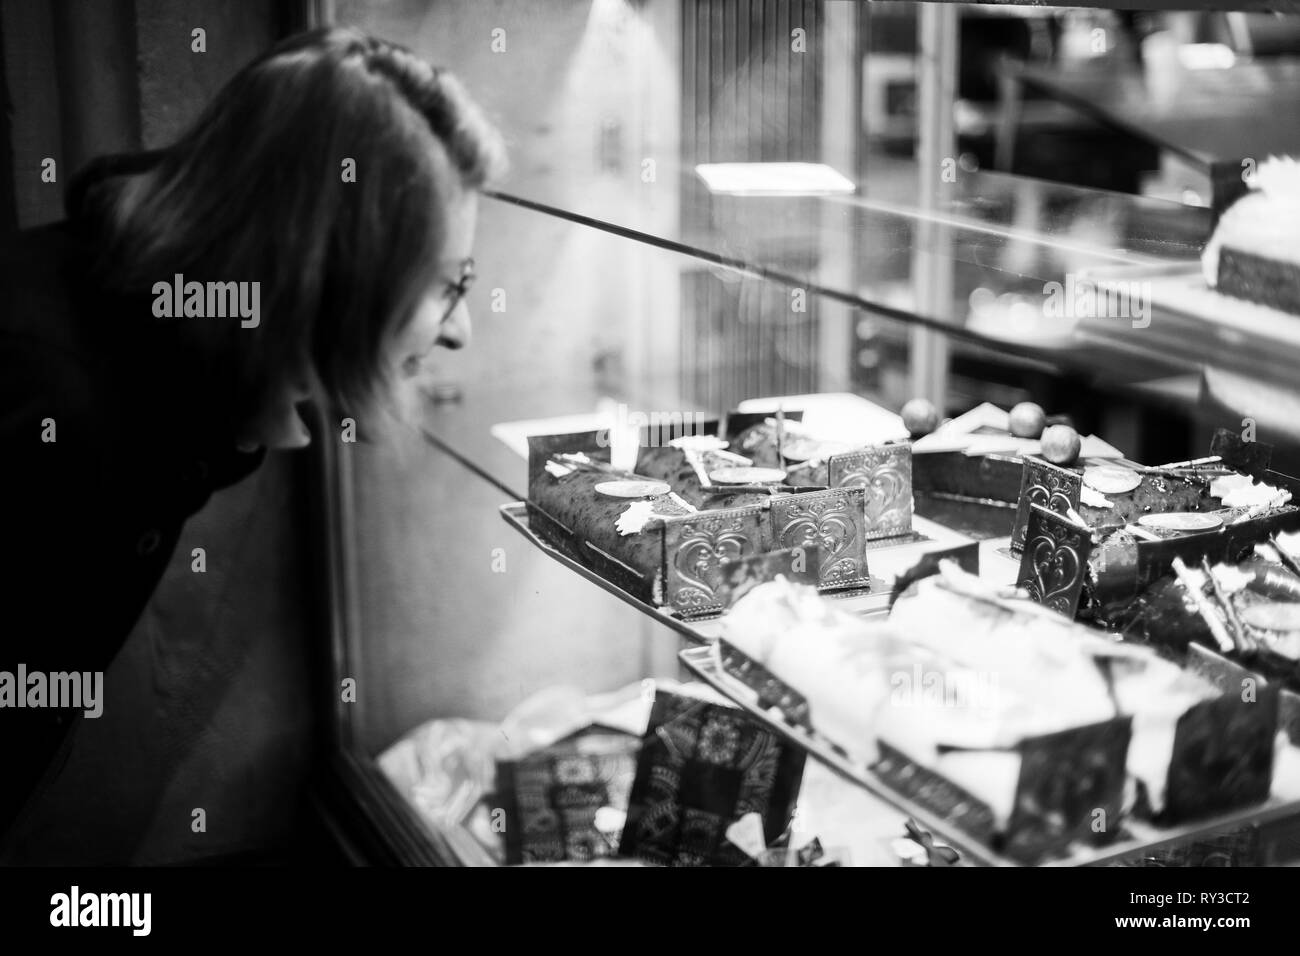 Woman buying sweets a the patisserie bakery store window in French city during Christmas winter holidays  Stock Photo